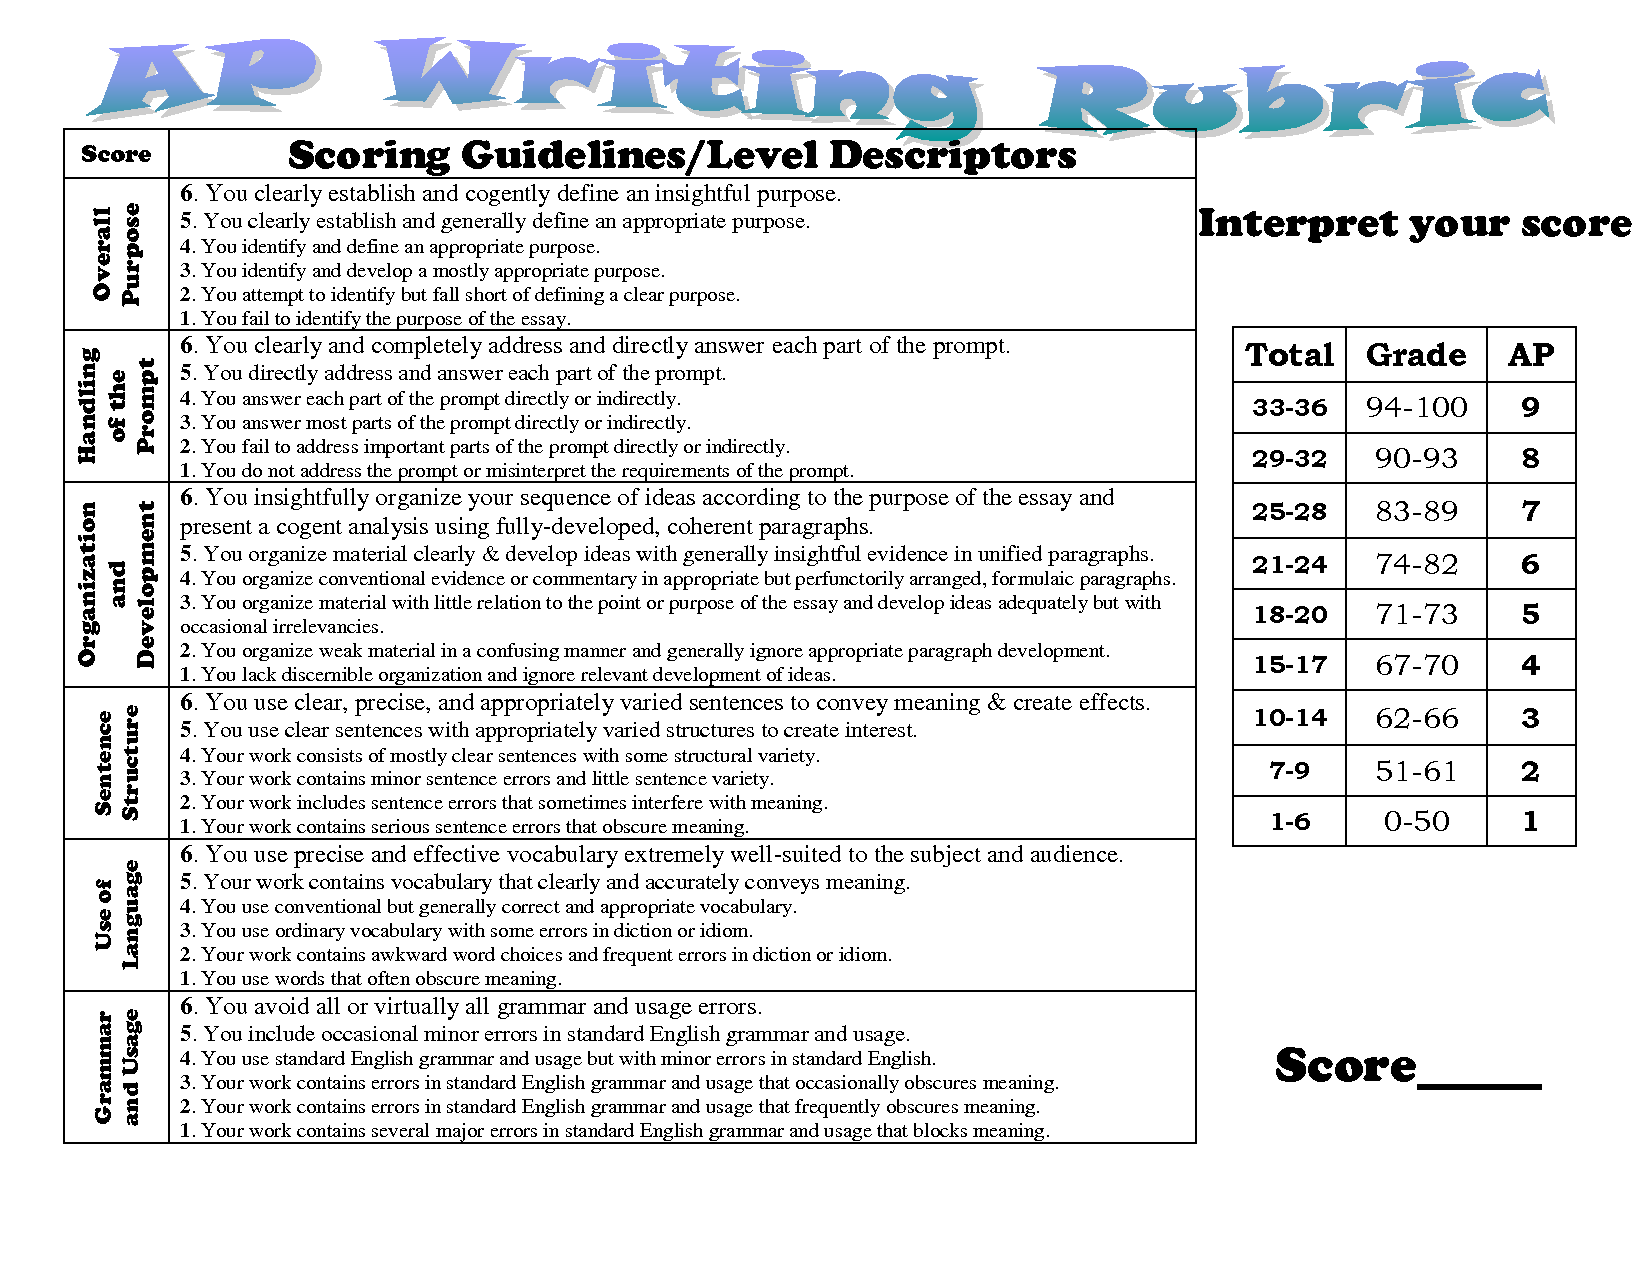 006 Free Online Essay Grader Ap English Language Composition Argument Rubric Coursework Help Tips Thesis Prompts Outlines Review Sensational Scoring Paper For Students Sat Full